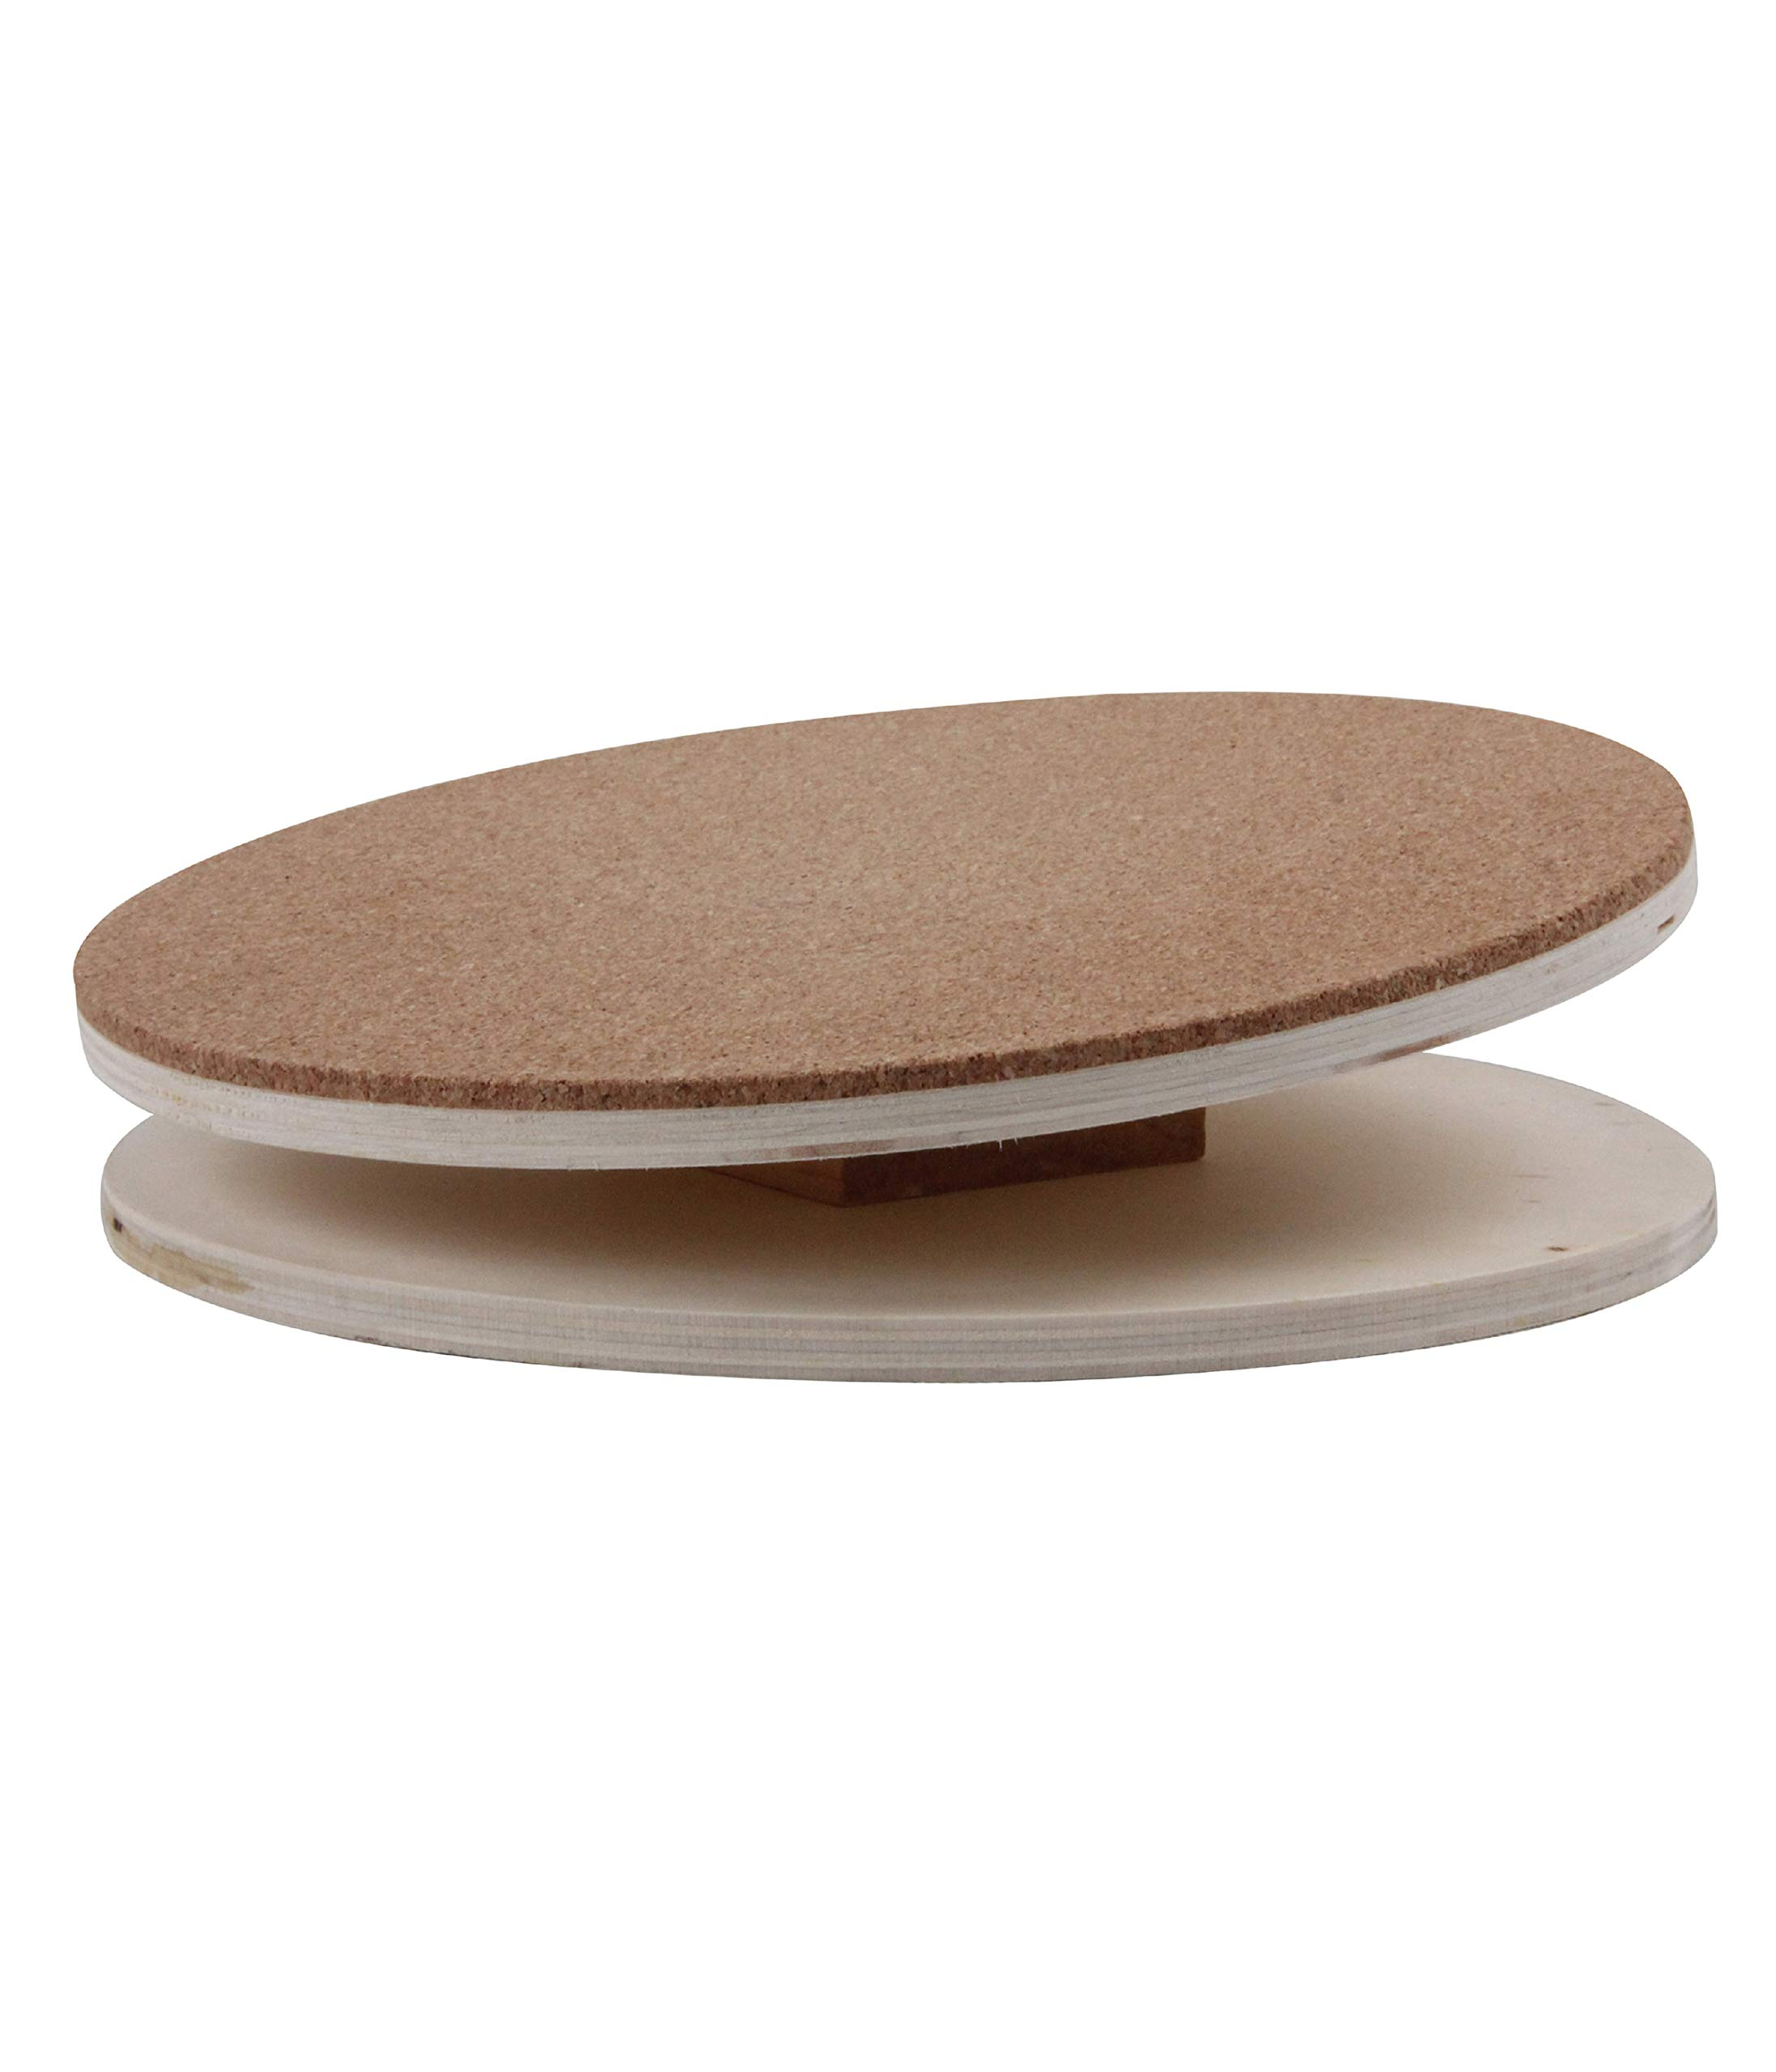 Dehner 4205324 Korky Play Tray for Small Animals Diameter 30 cm Natural Wood L